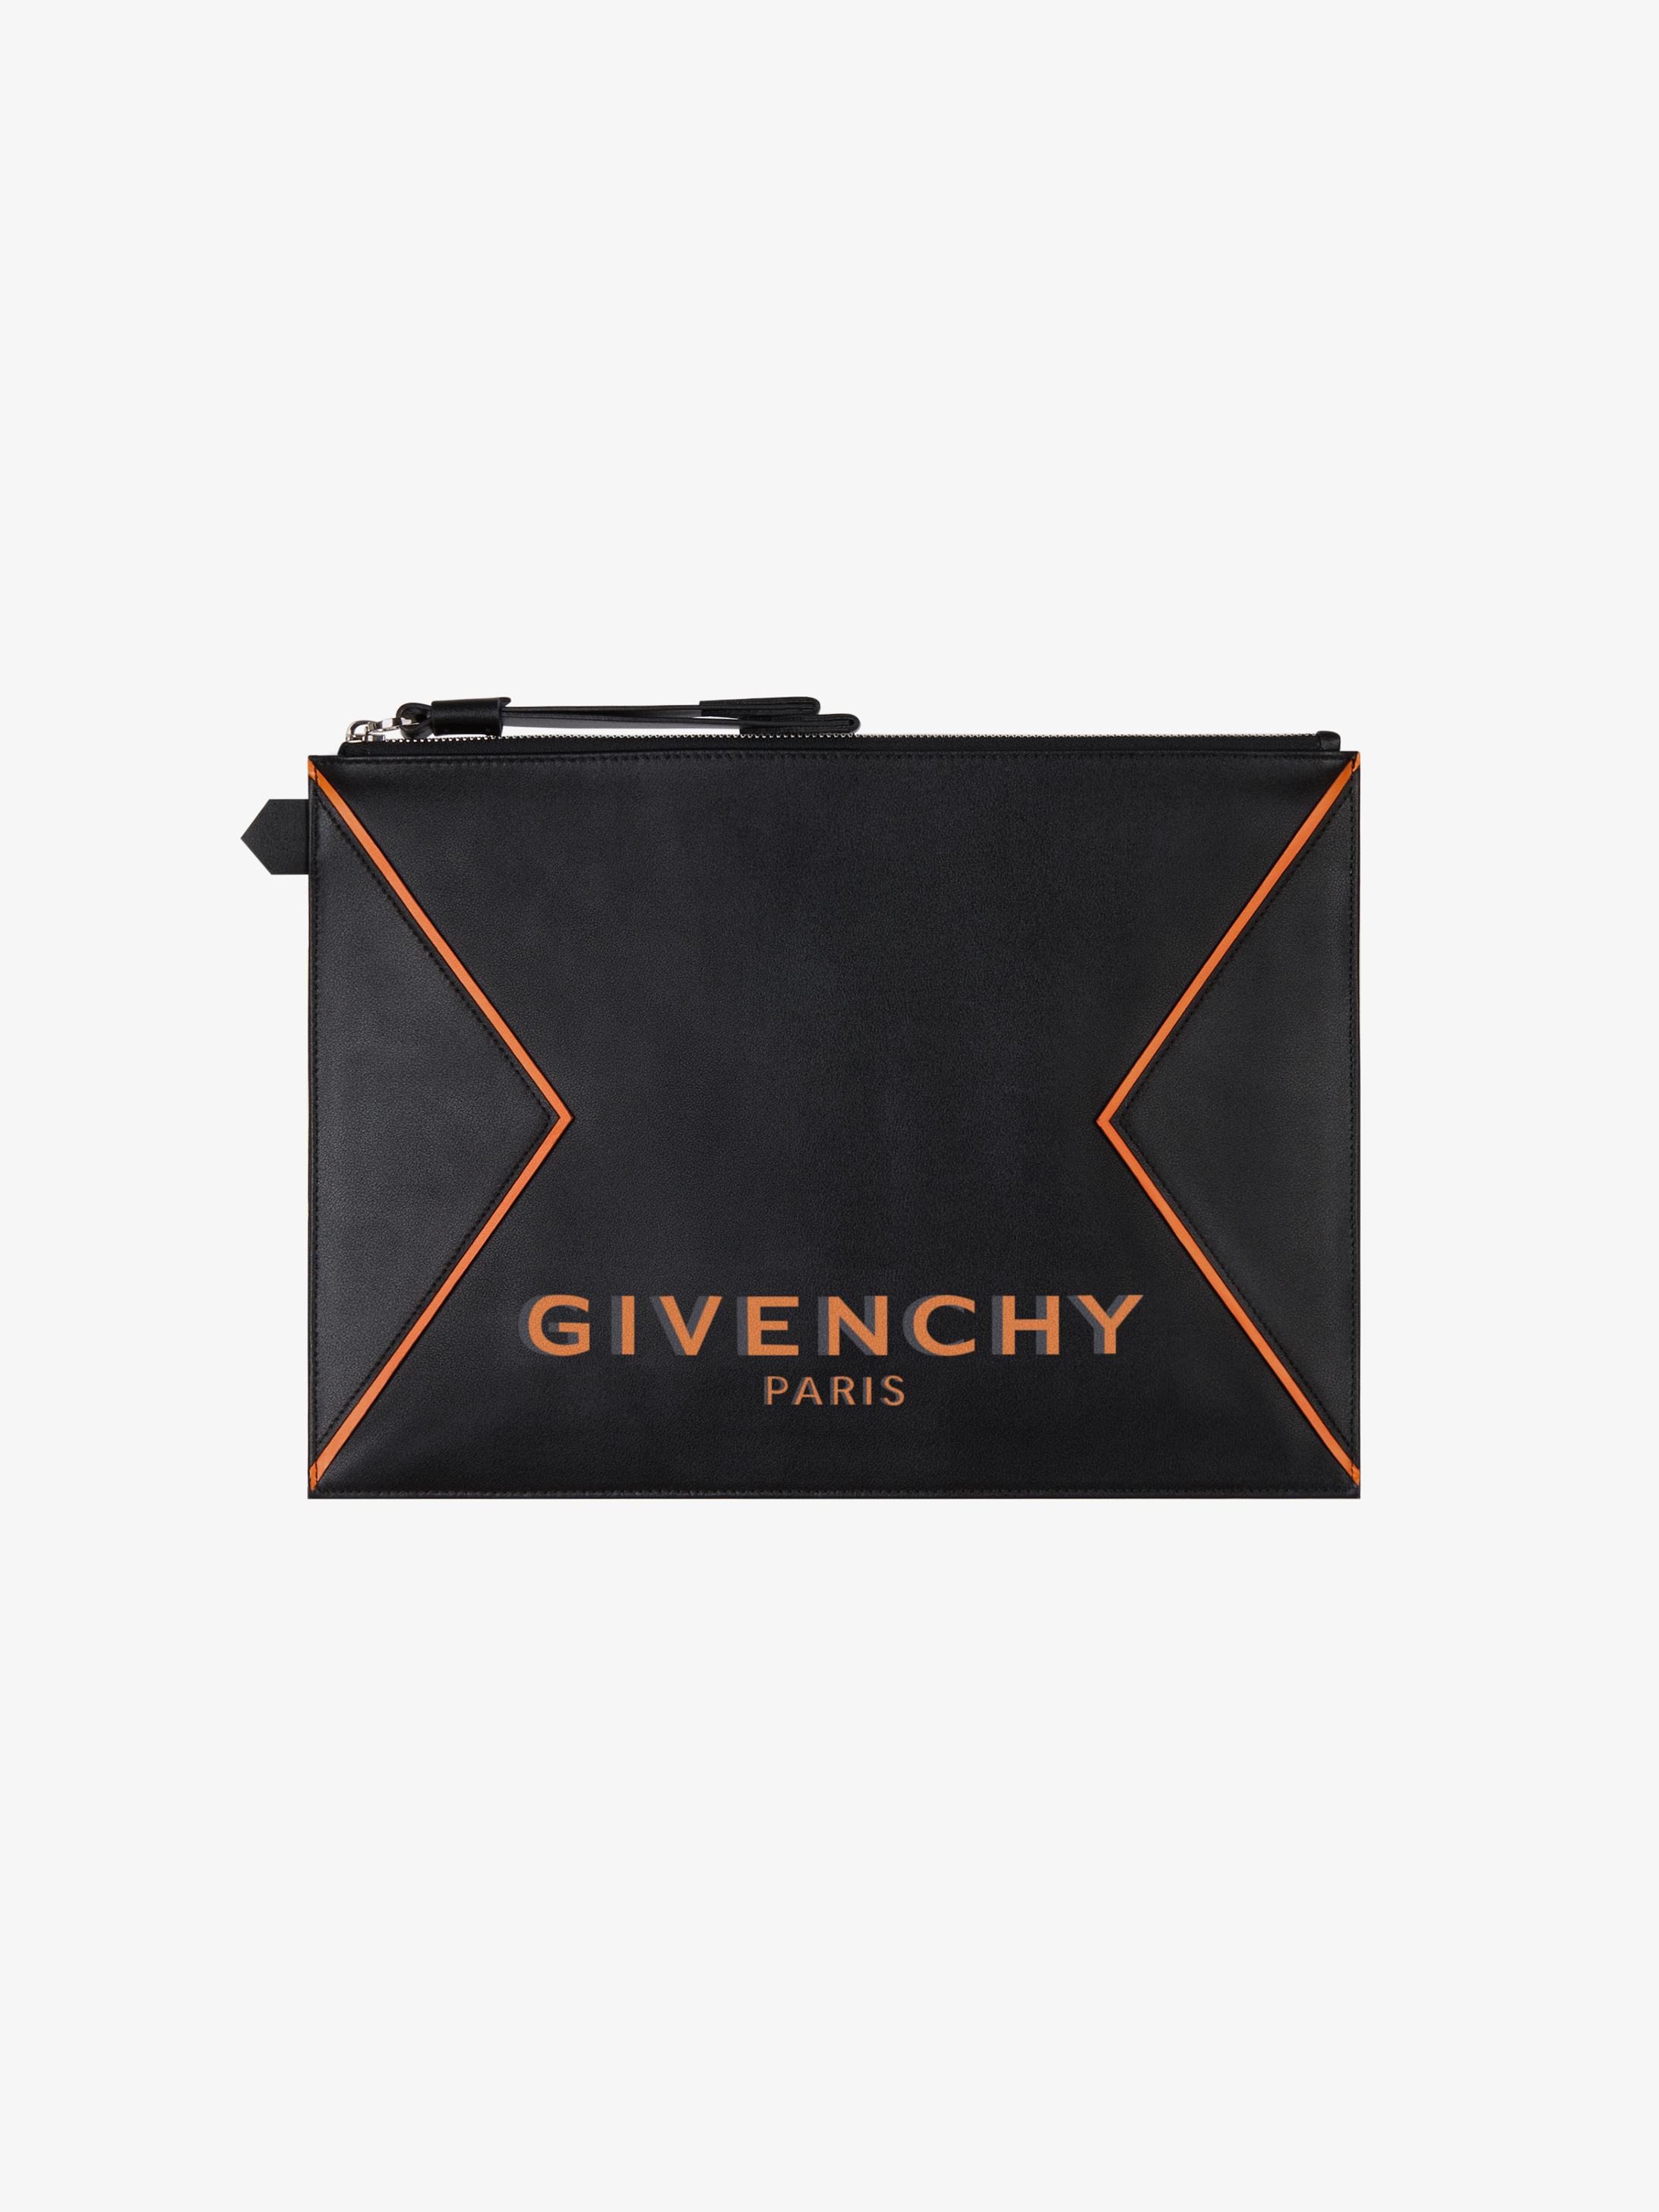 GIVENCHY PARIS large pouch in leather